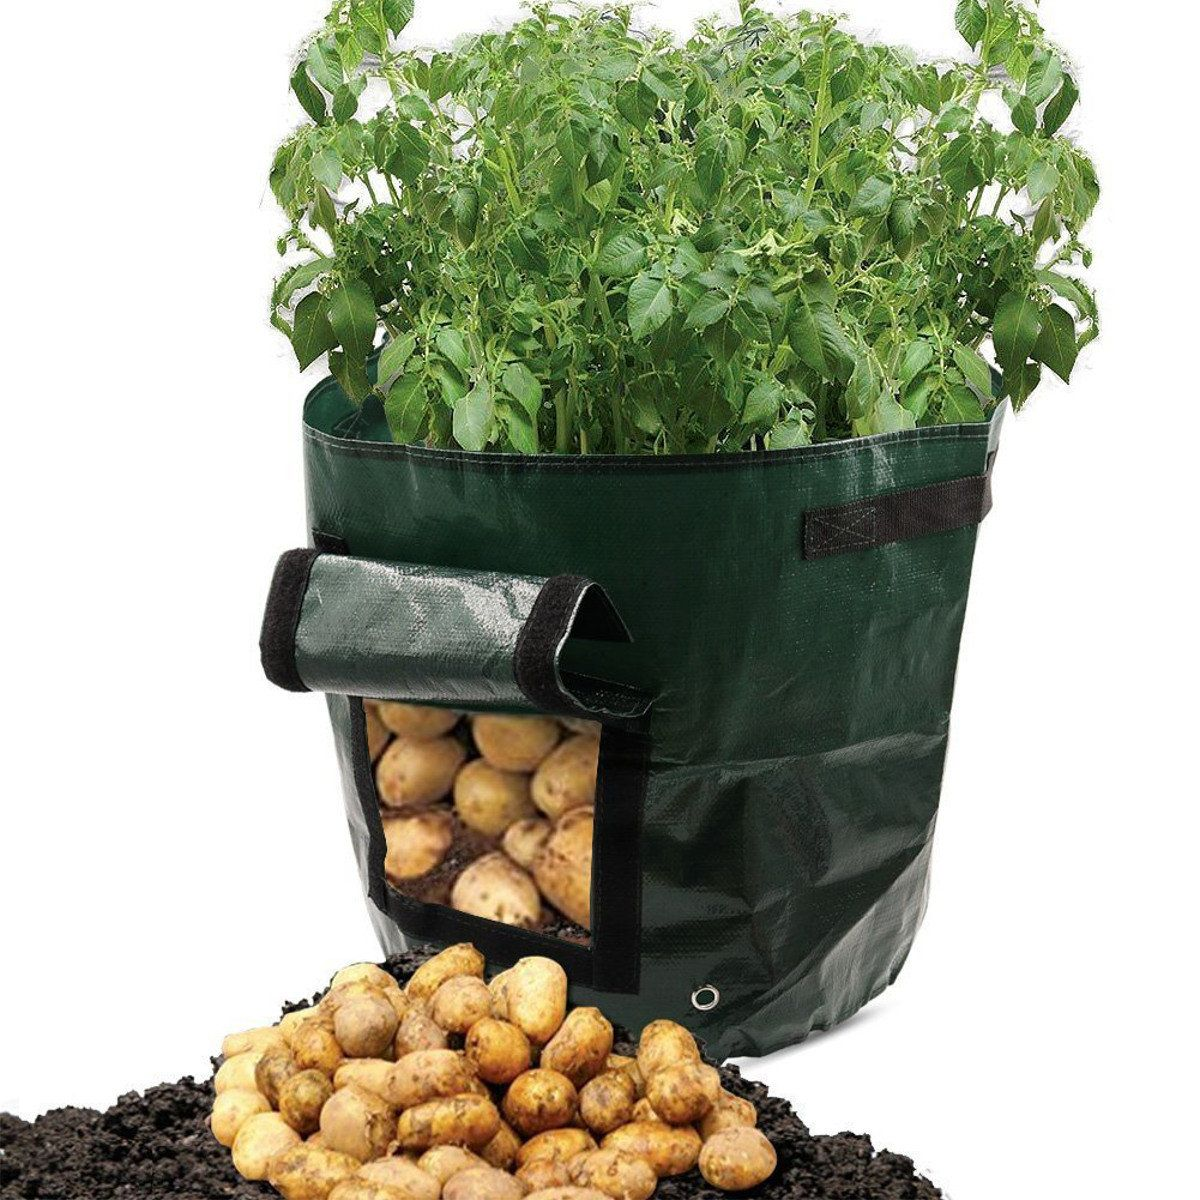 Tomatoes Potato Grow Bag Fruits Vegetables Planter Pots Breathable